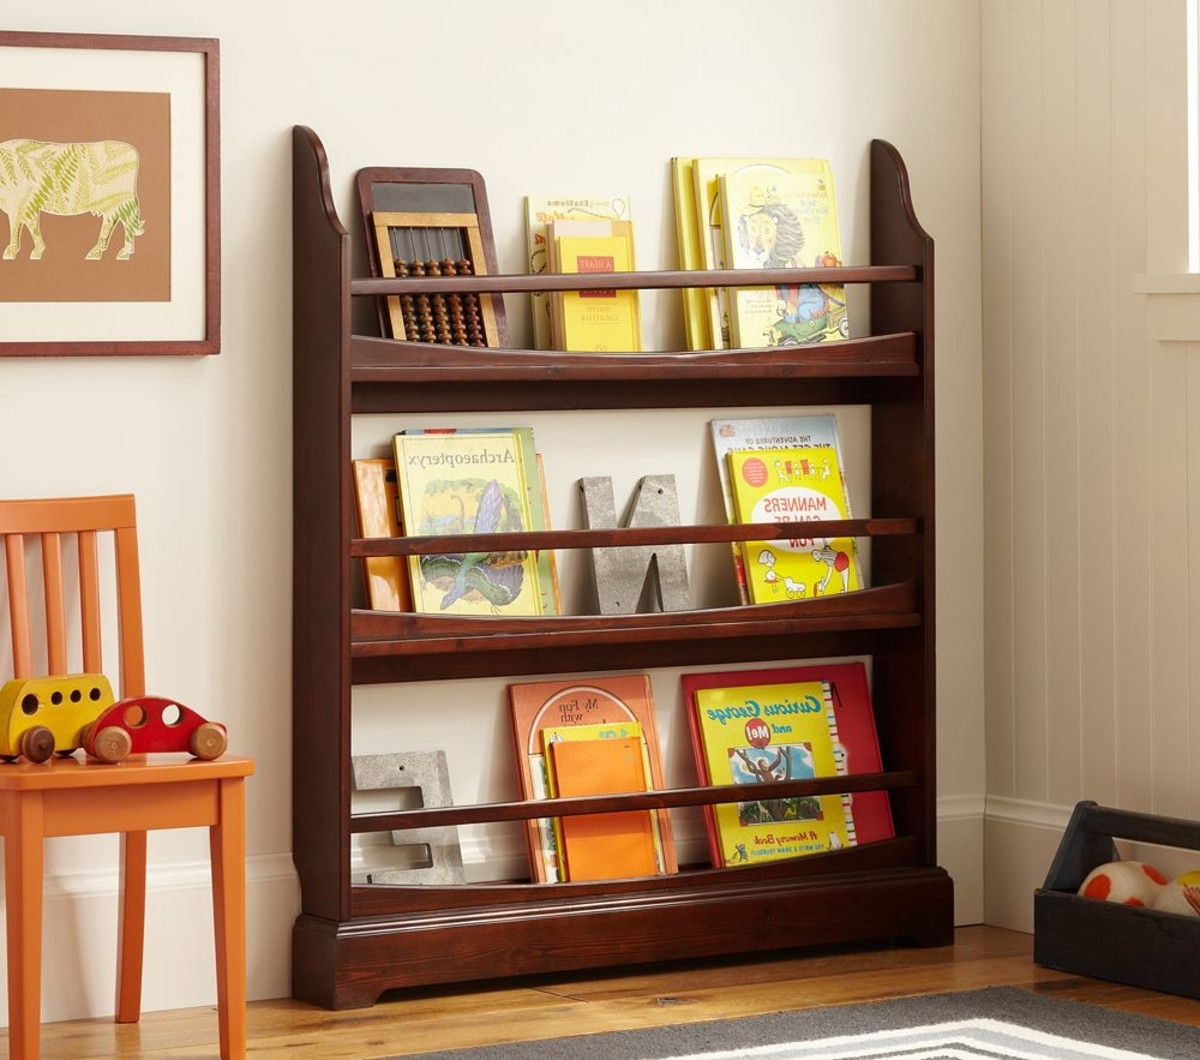 Pottery Barn Bookcases Intended For Current Madison 3 Shelf Bookrack (View 13 of 15)